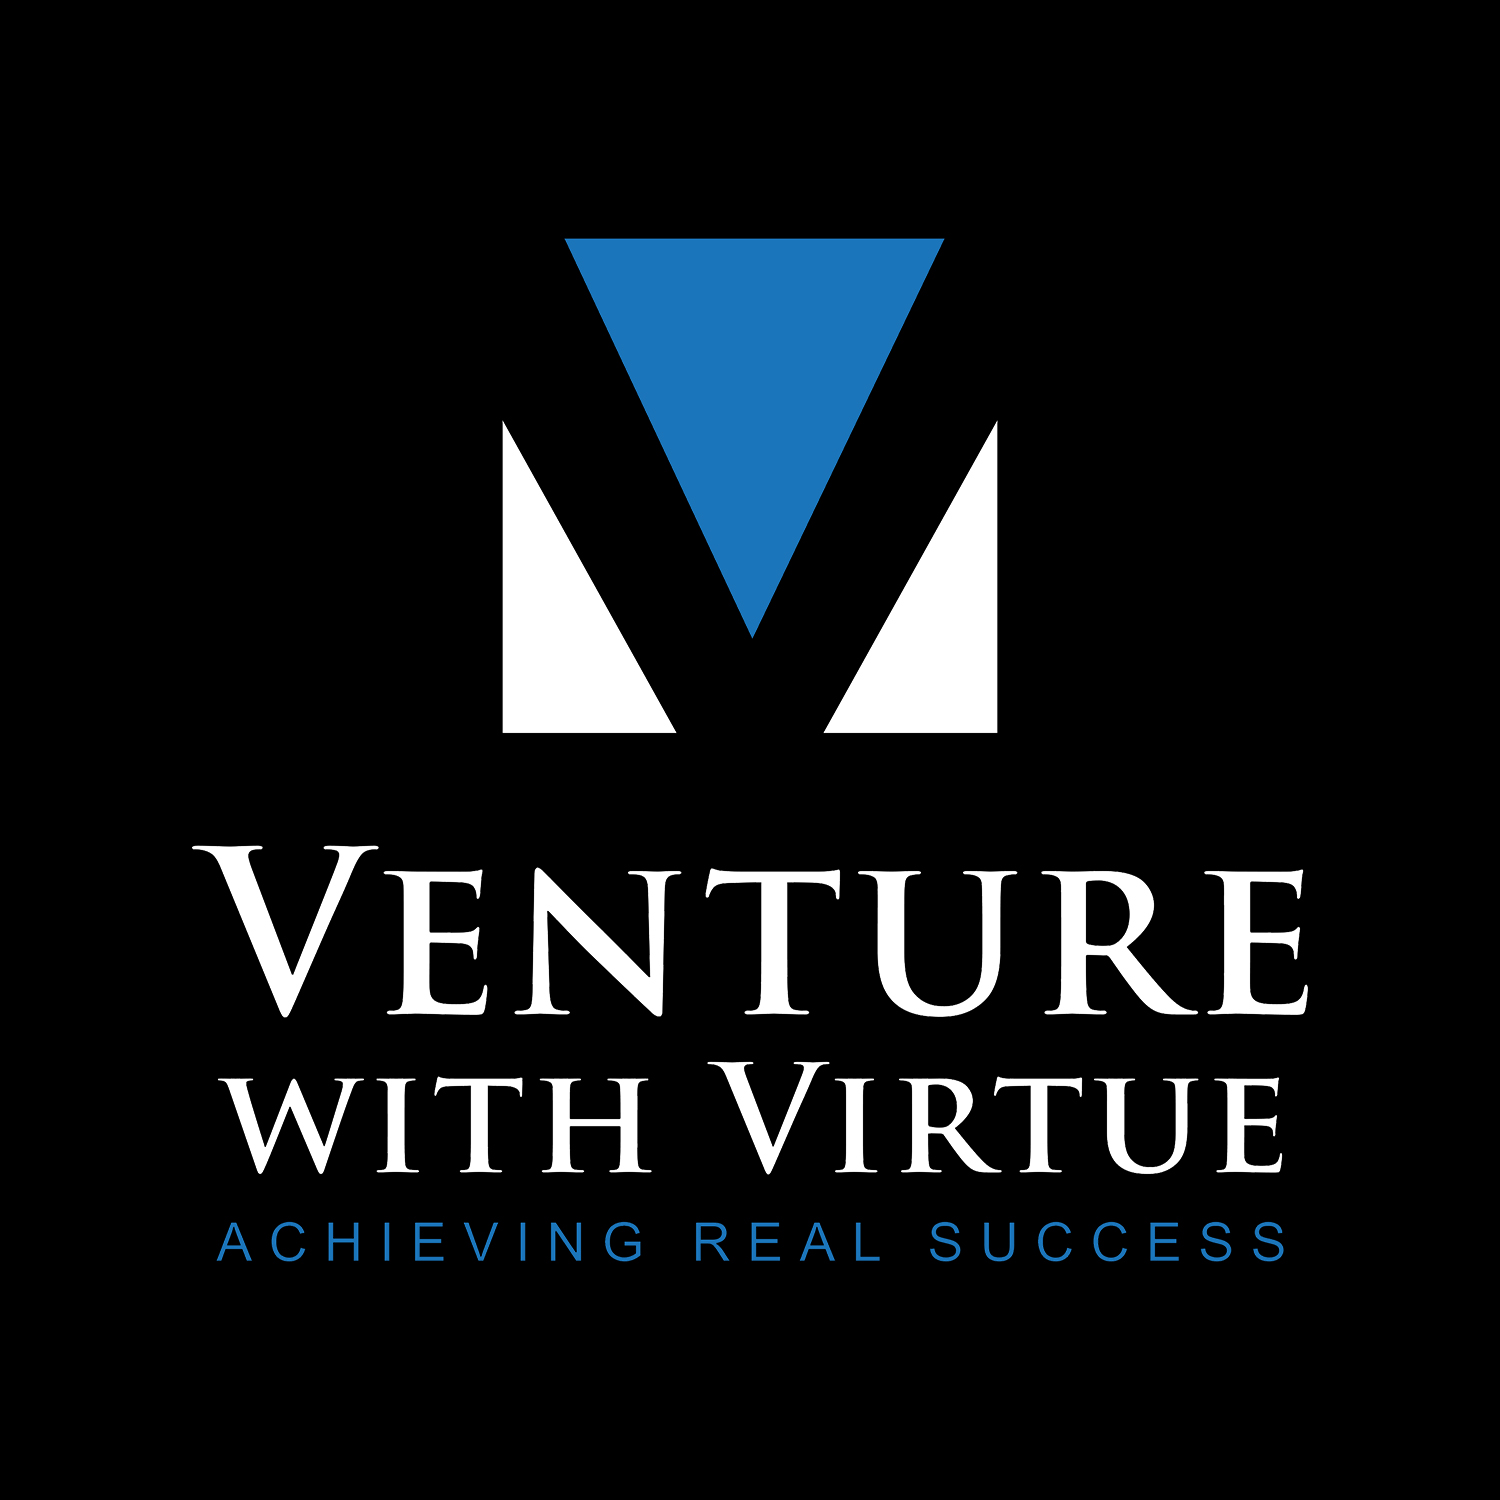 Venture with Virtue